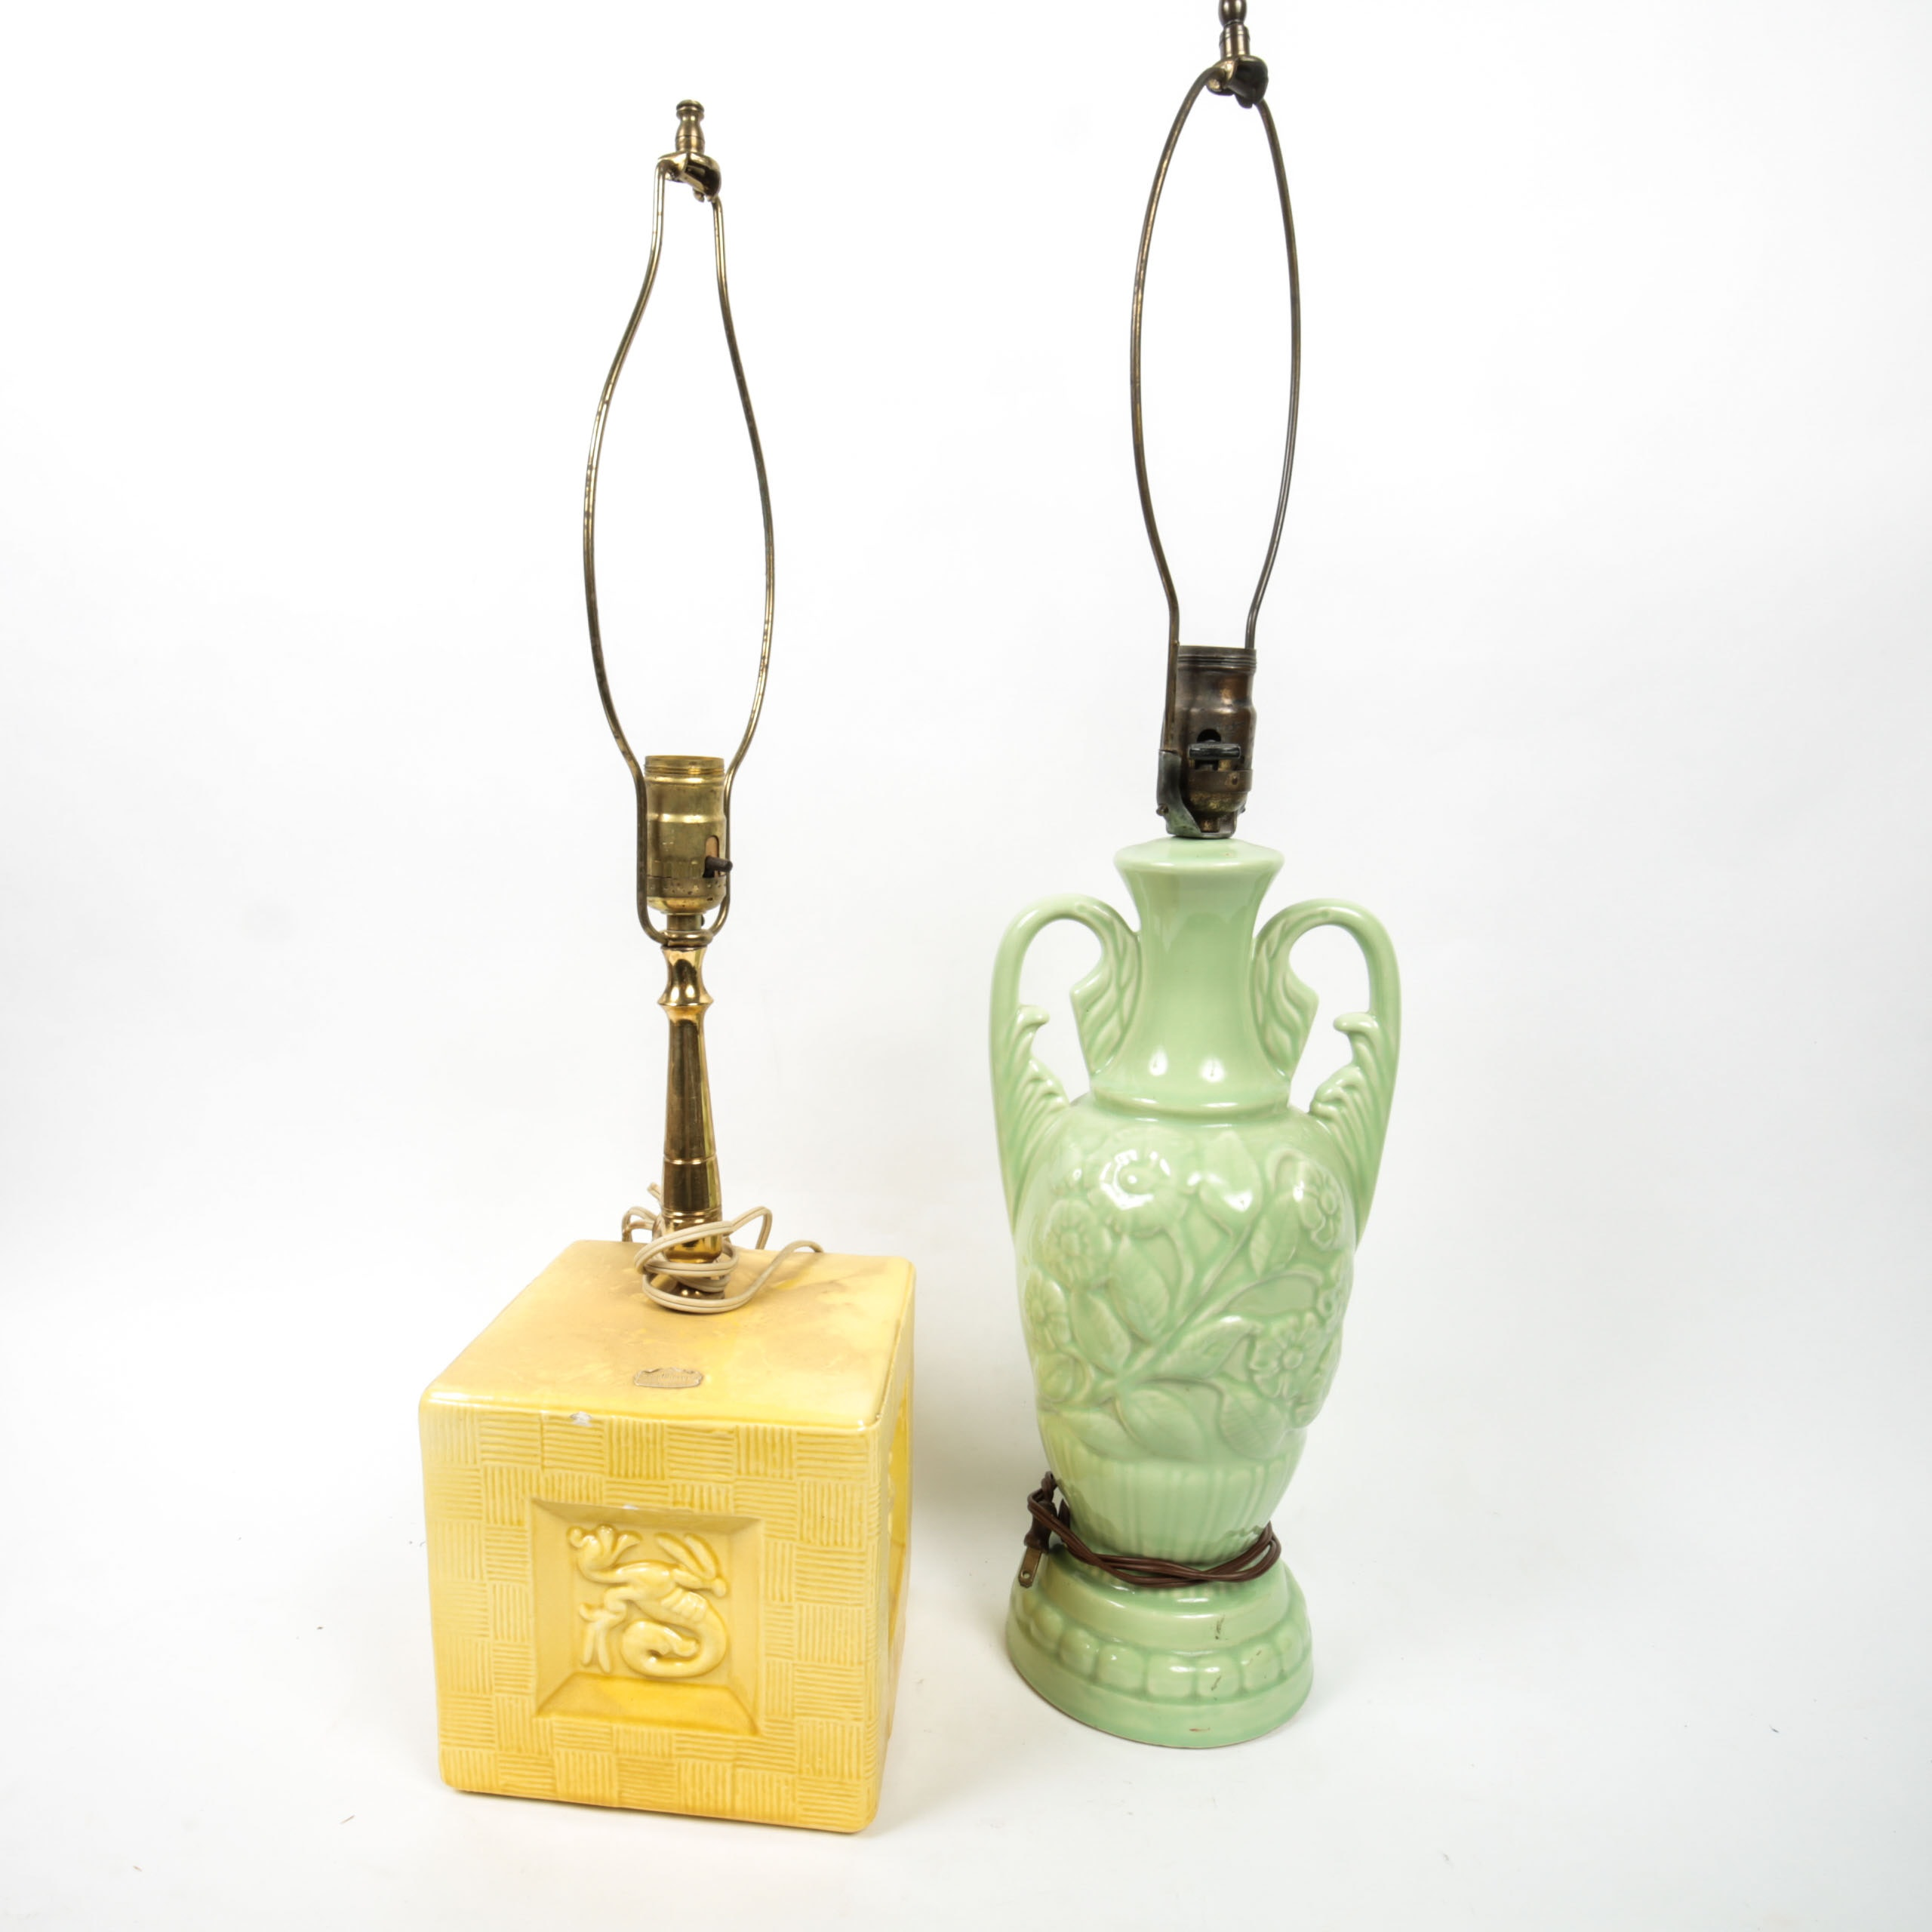 Vintage Ceramic Table Lamps